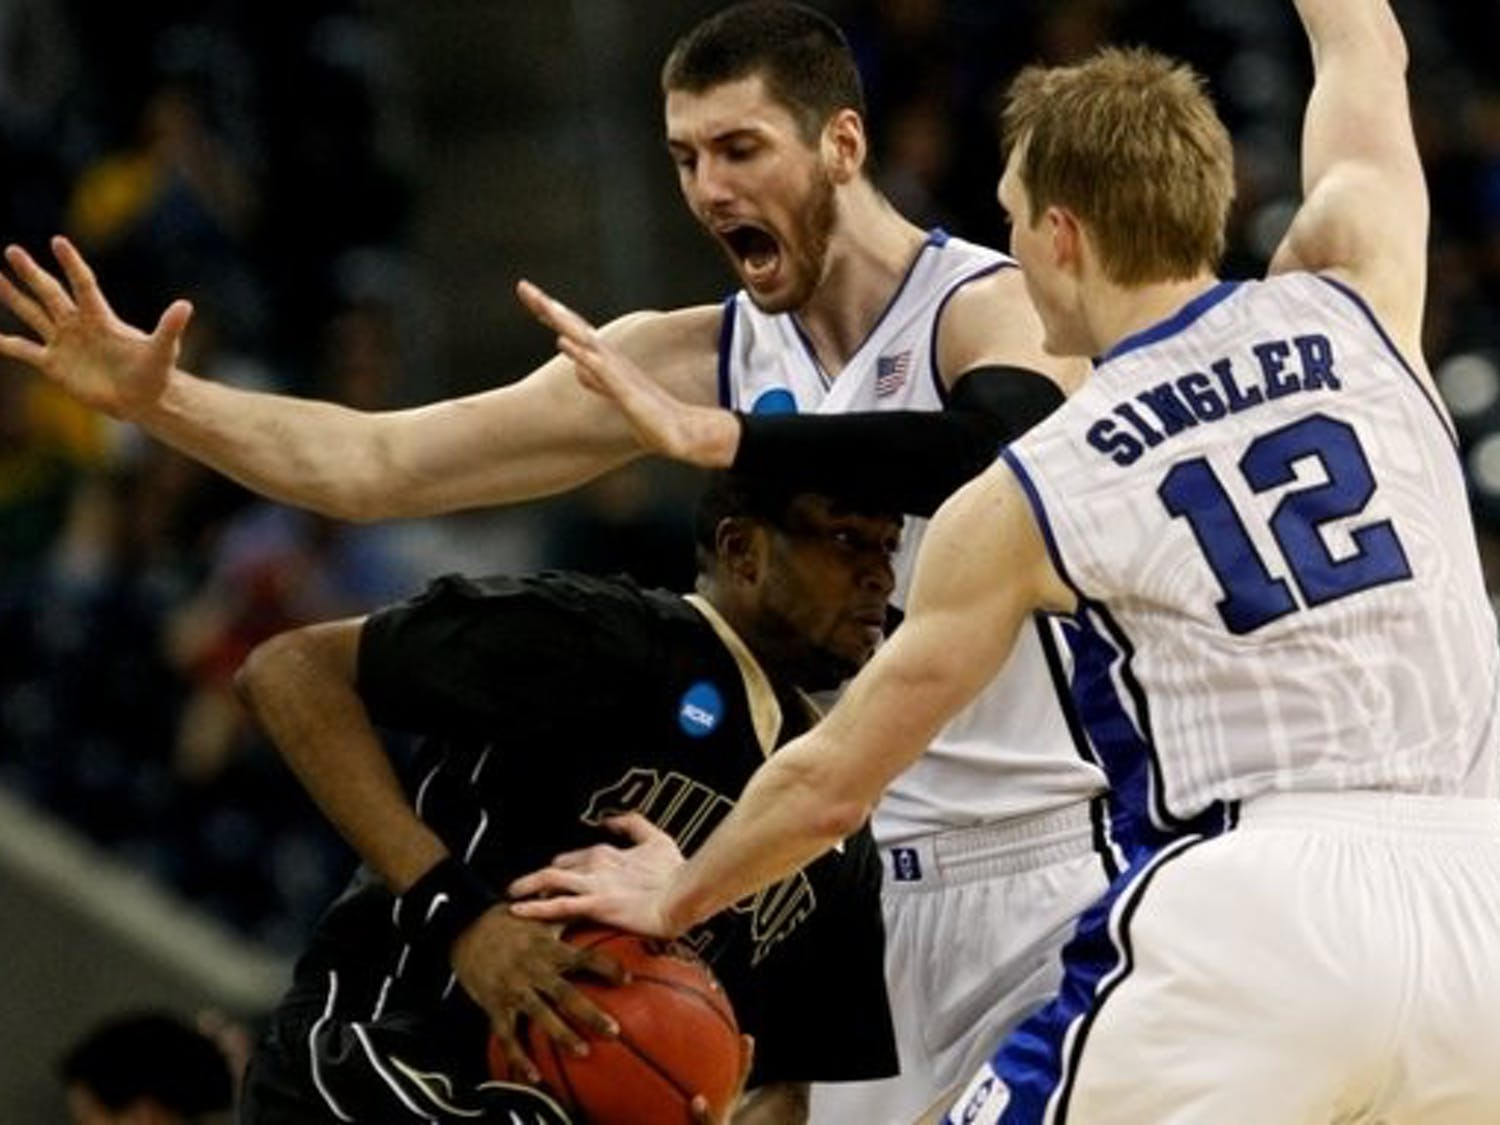 Photos from the Duke Mens Basketball Team's win over Purdue in the third round of the NCAA tournament. The win propelled Duke to its first Elite Eight since 2004.